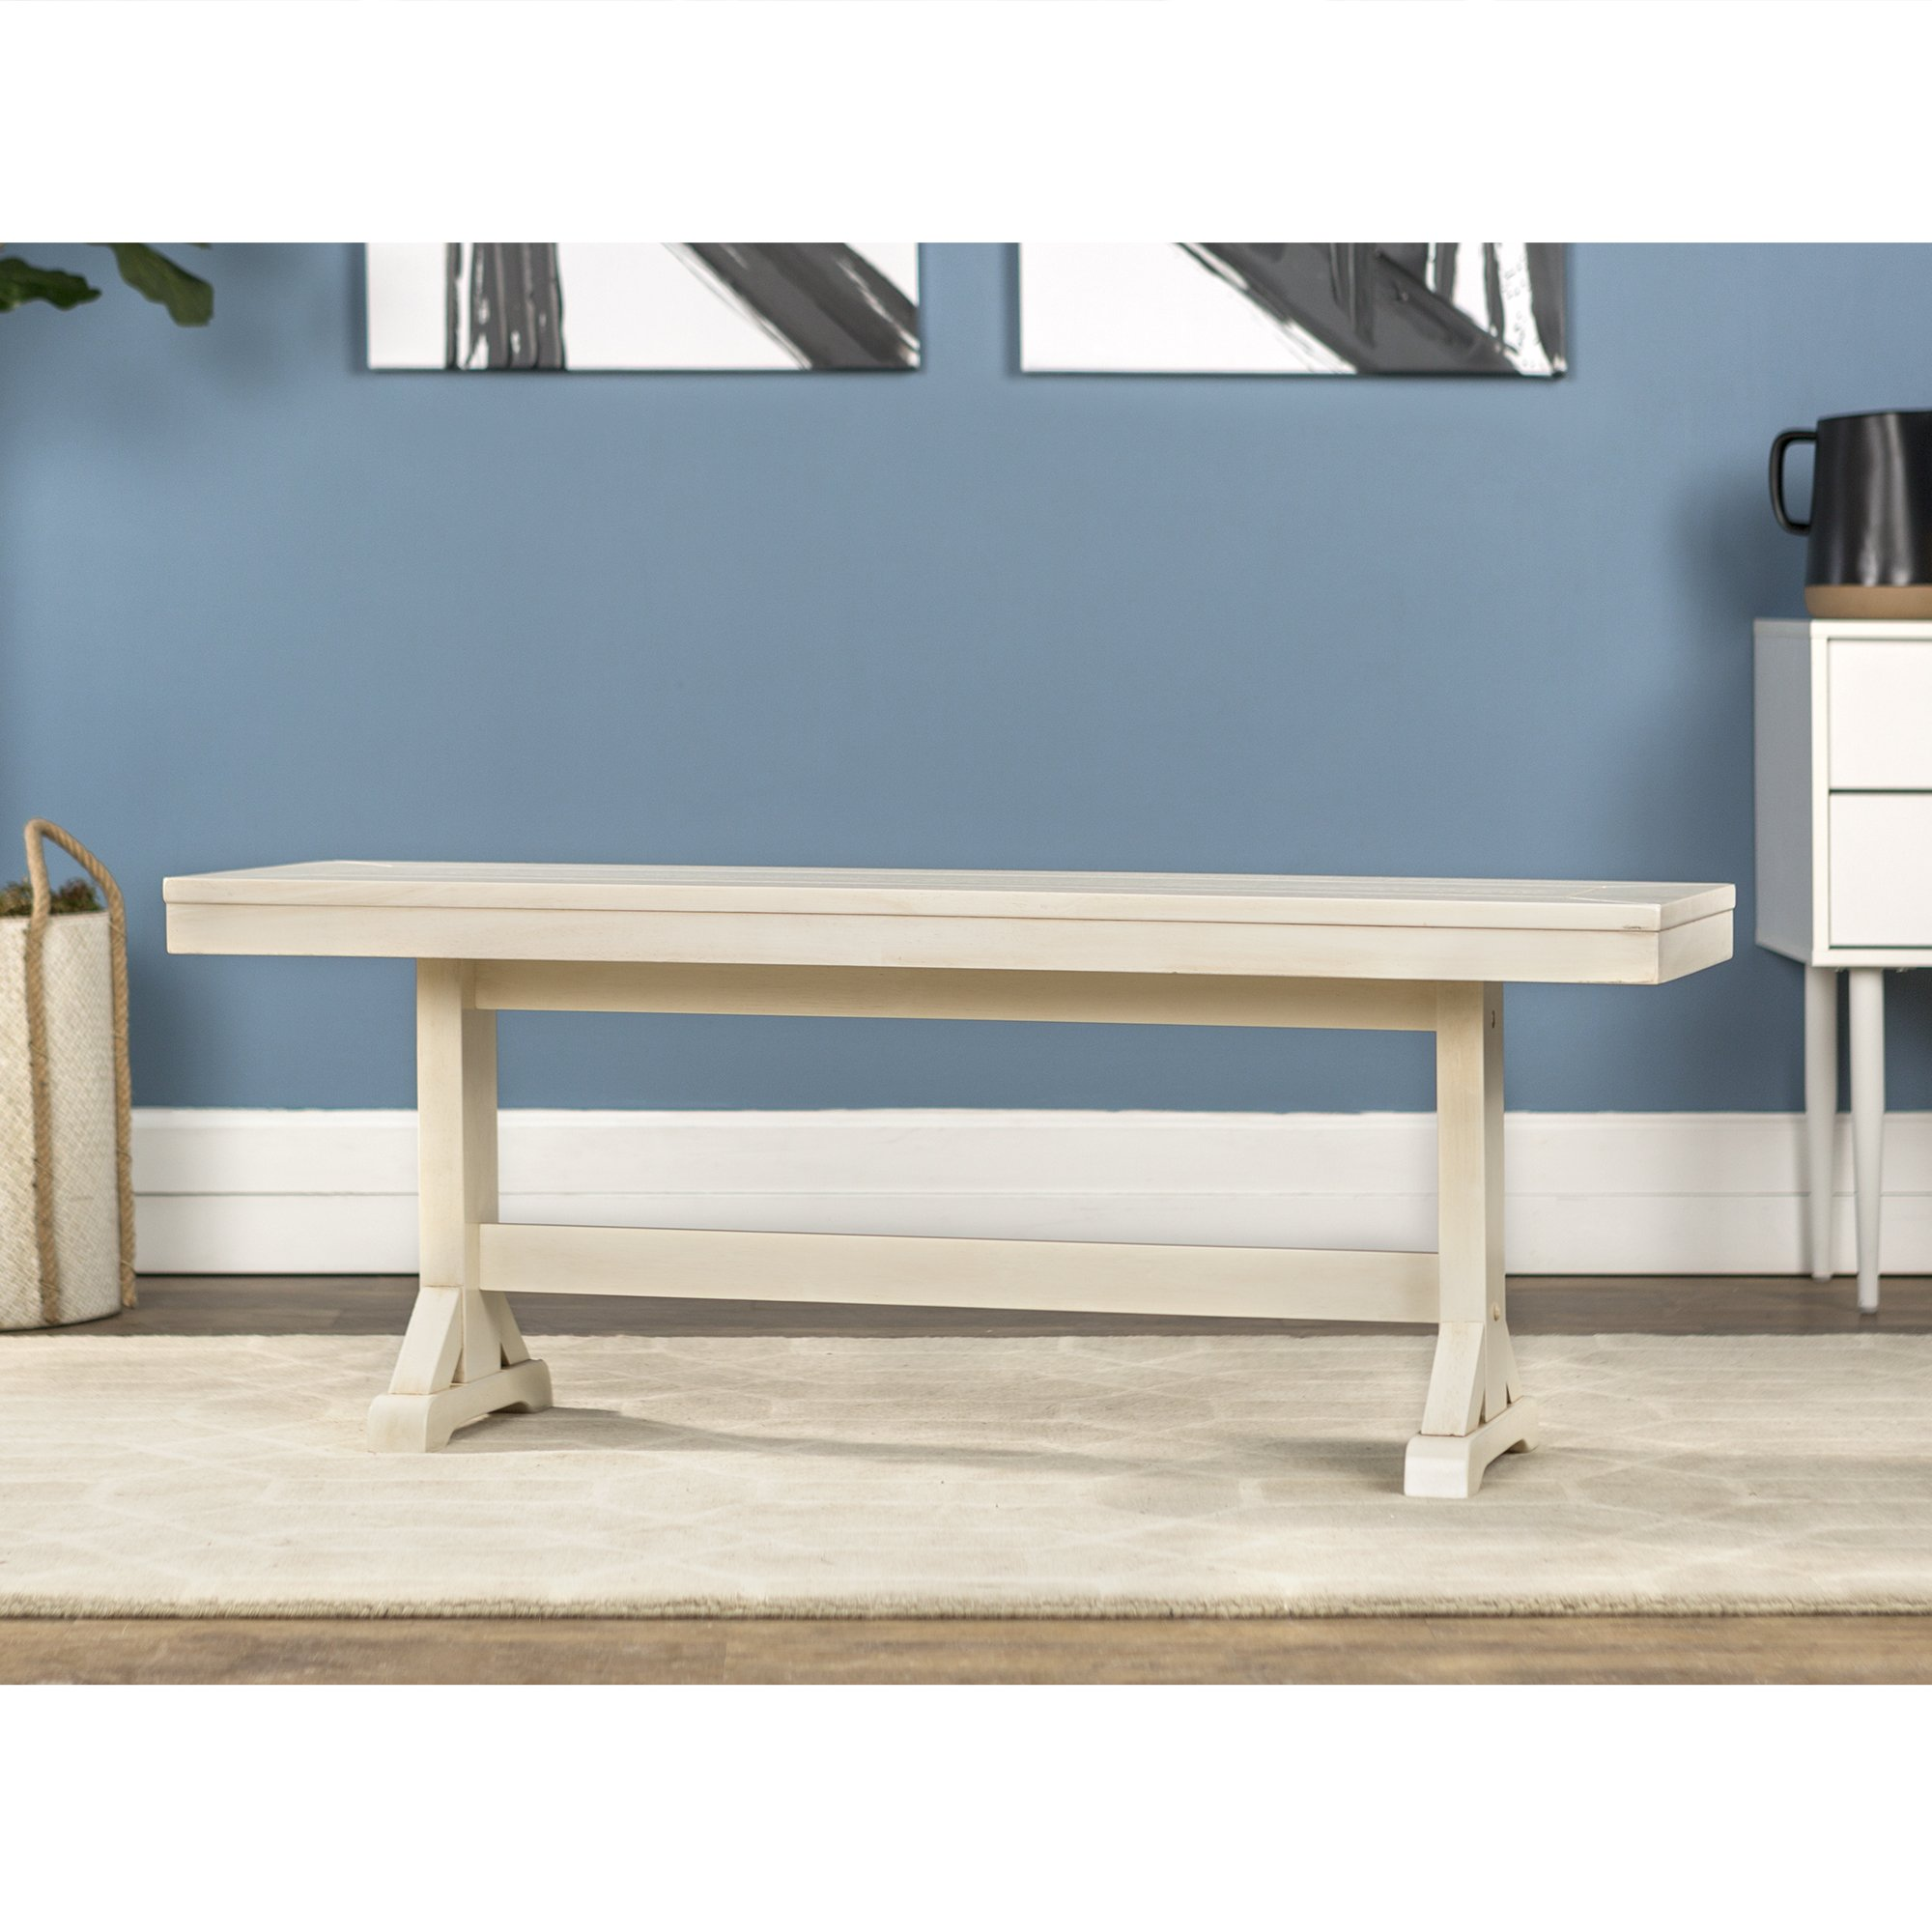 WE Furniture 48'' Millwright Wood Dining Bench - Antique White